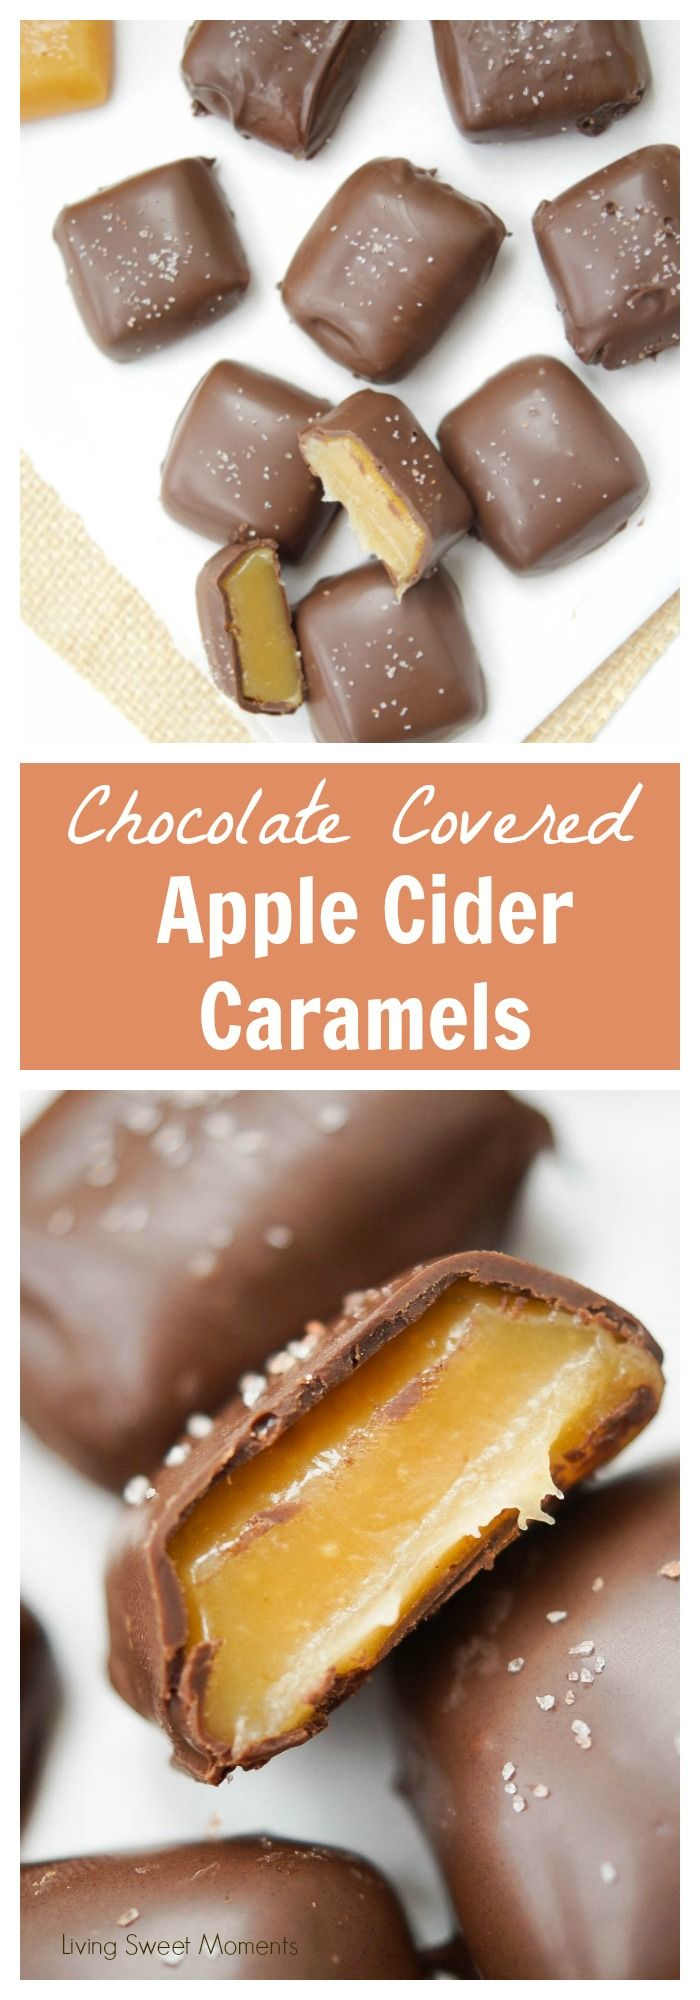 This chocolate covered Apple Cider Caramels recipe is easy to make. The perfect fancy dessert for fall. Made with reduced apple cider for a deeper taste. More recipes at livingsweetmoments.com